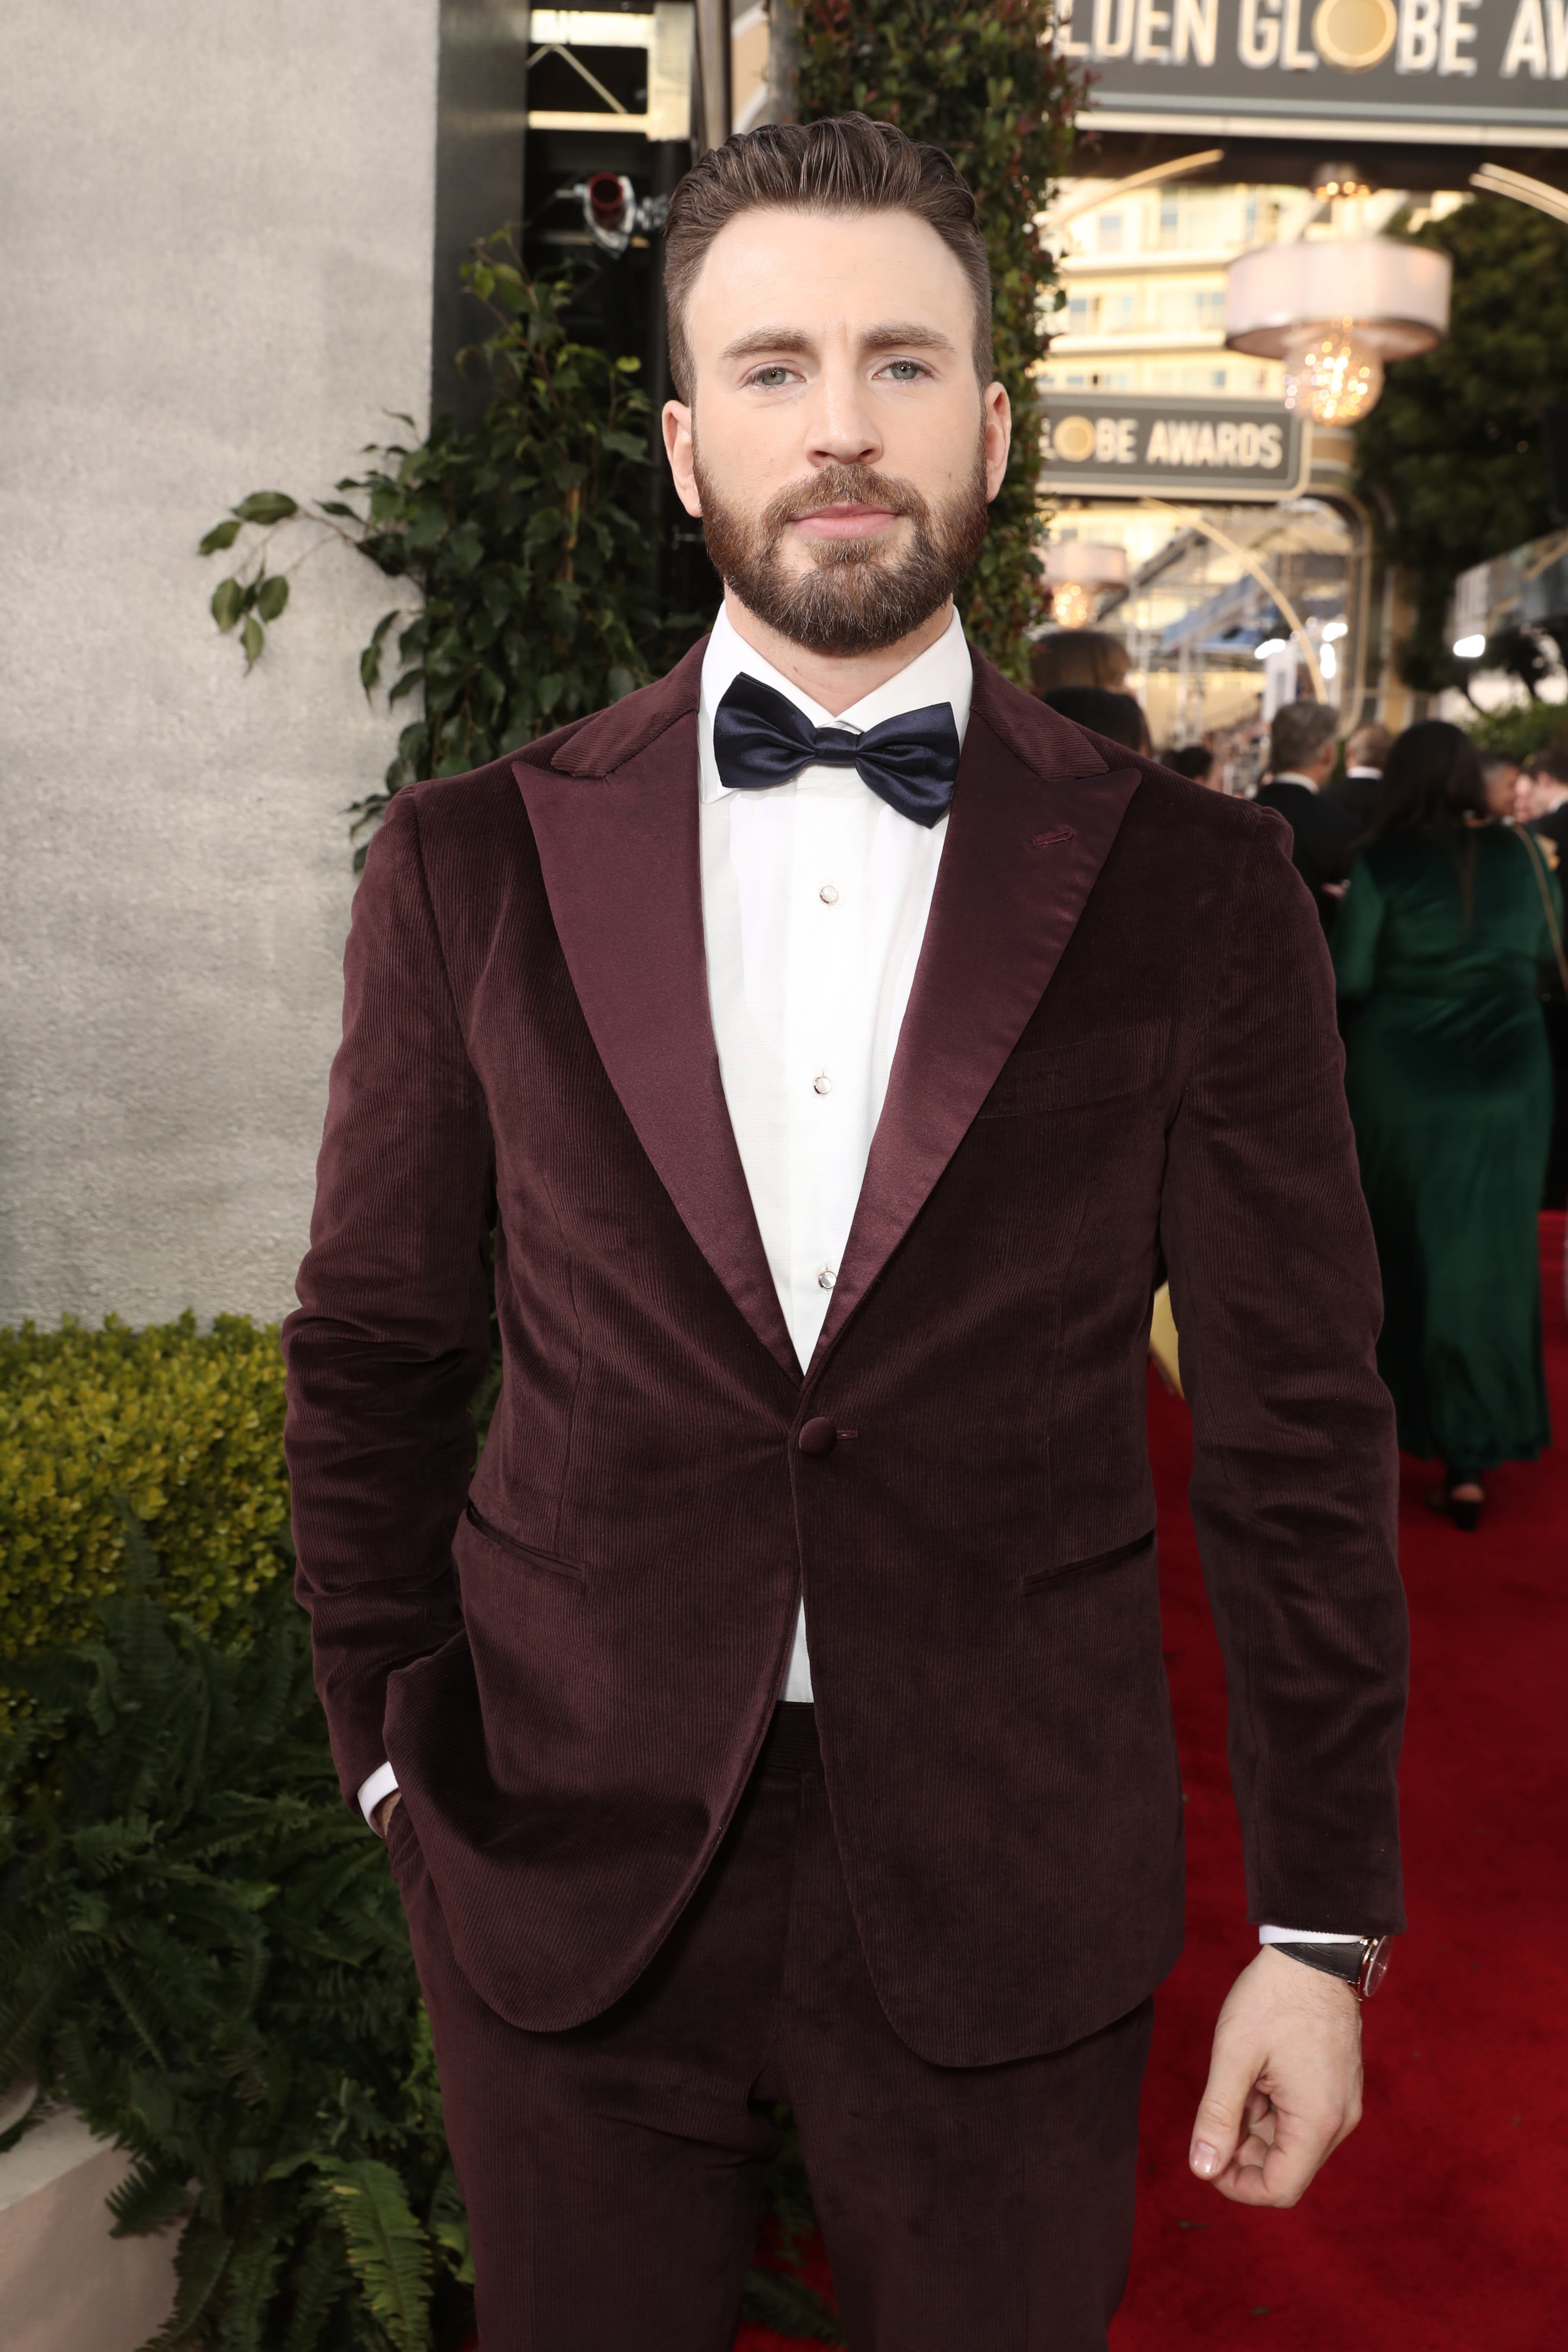 Evans at the Golden Globes in 2020